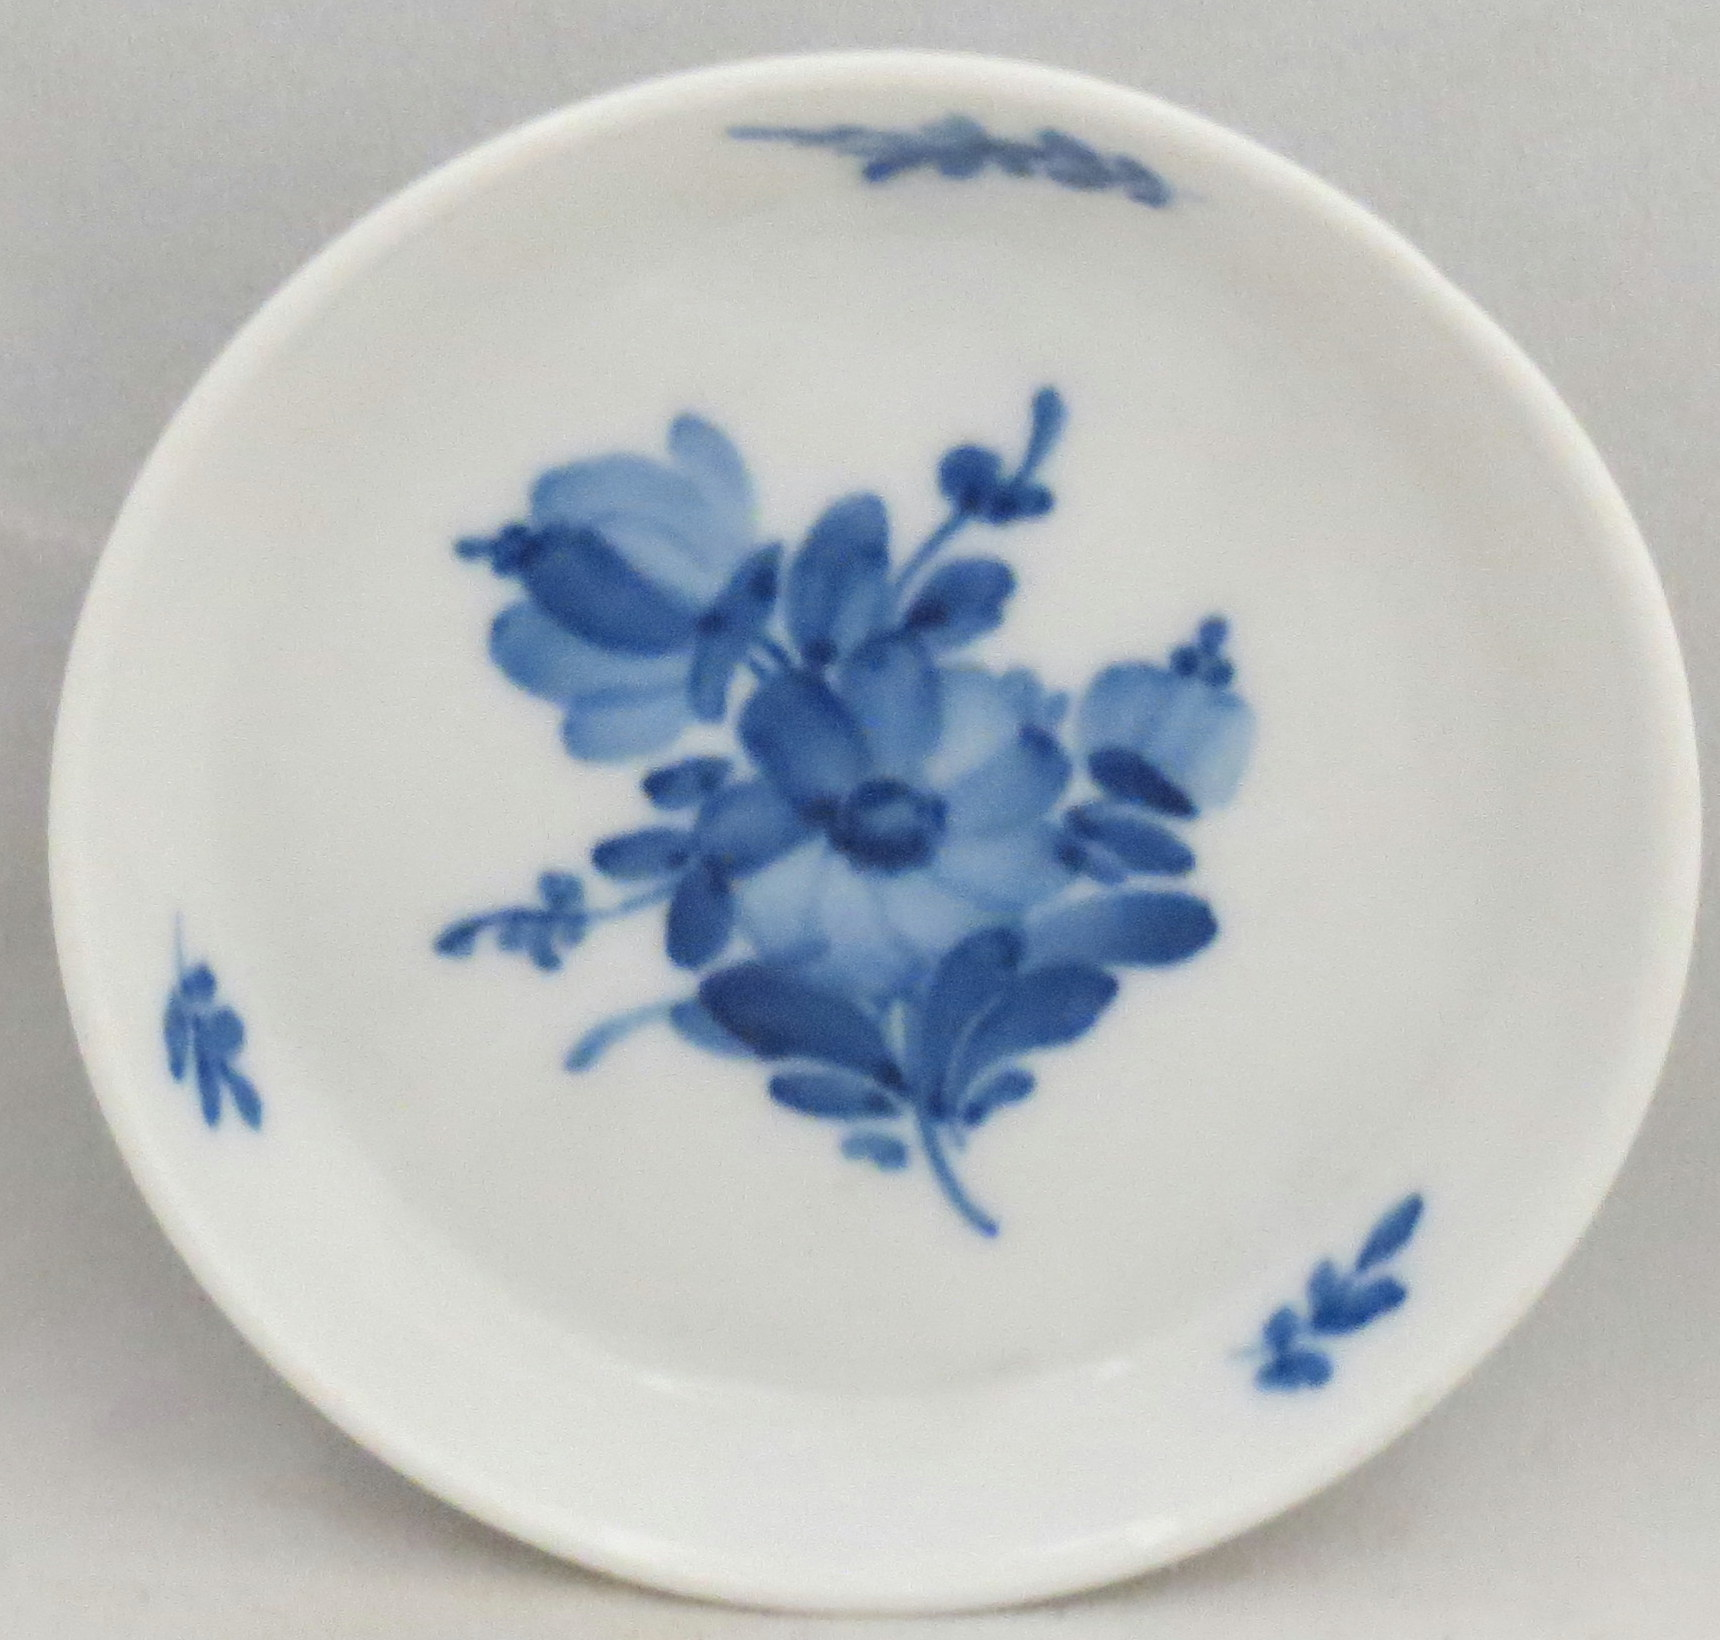 dating royal copenhagen pottery Royal copenhagen design collectible christmas plates, dishes, figurines and fine china for sale online buy all your collectibles at danish porcelain house with safe and fast worldwide delivery today.